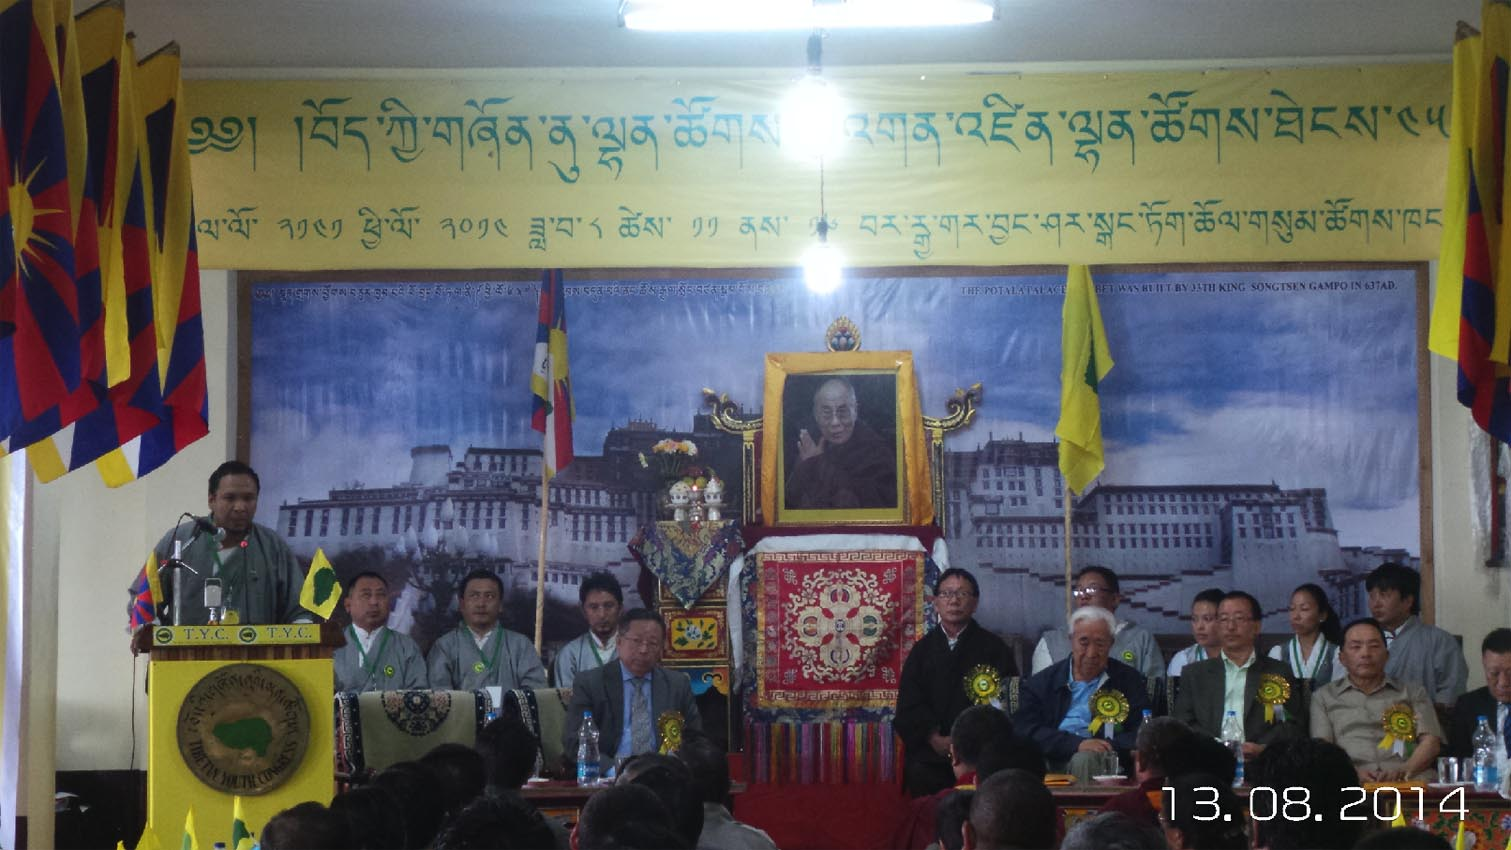 Largest Tibetan grassroots organization begins 45th annual meeting